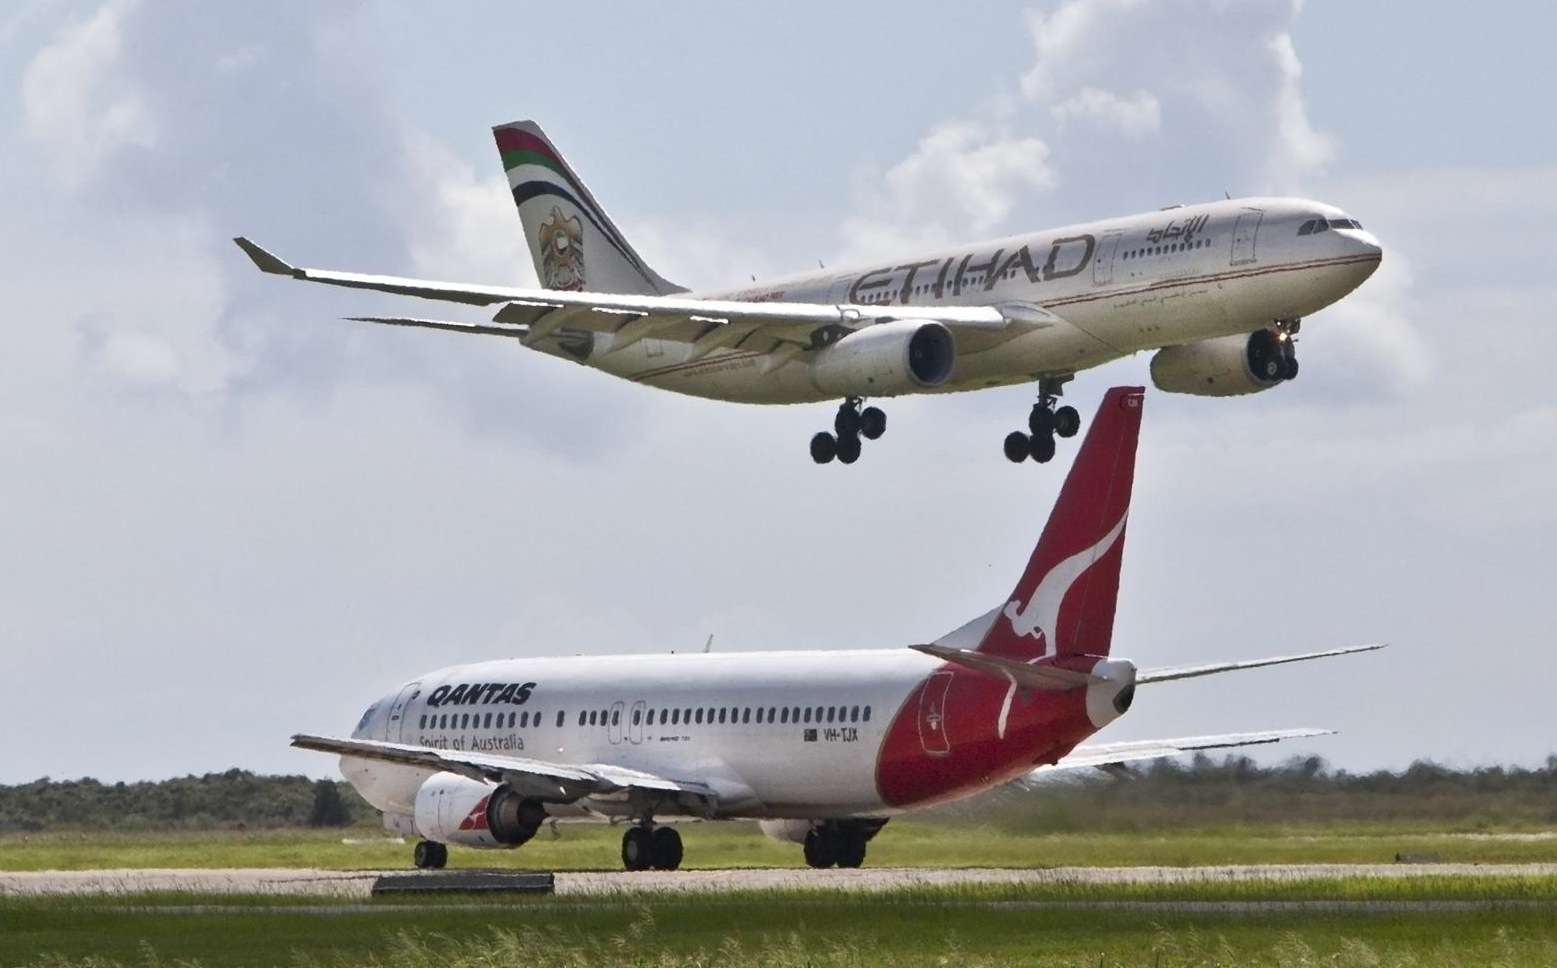 Will Qantas and Emirates partner with Air Pacific or will Etihad and Virgin Australia move in?